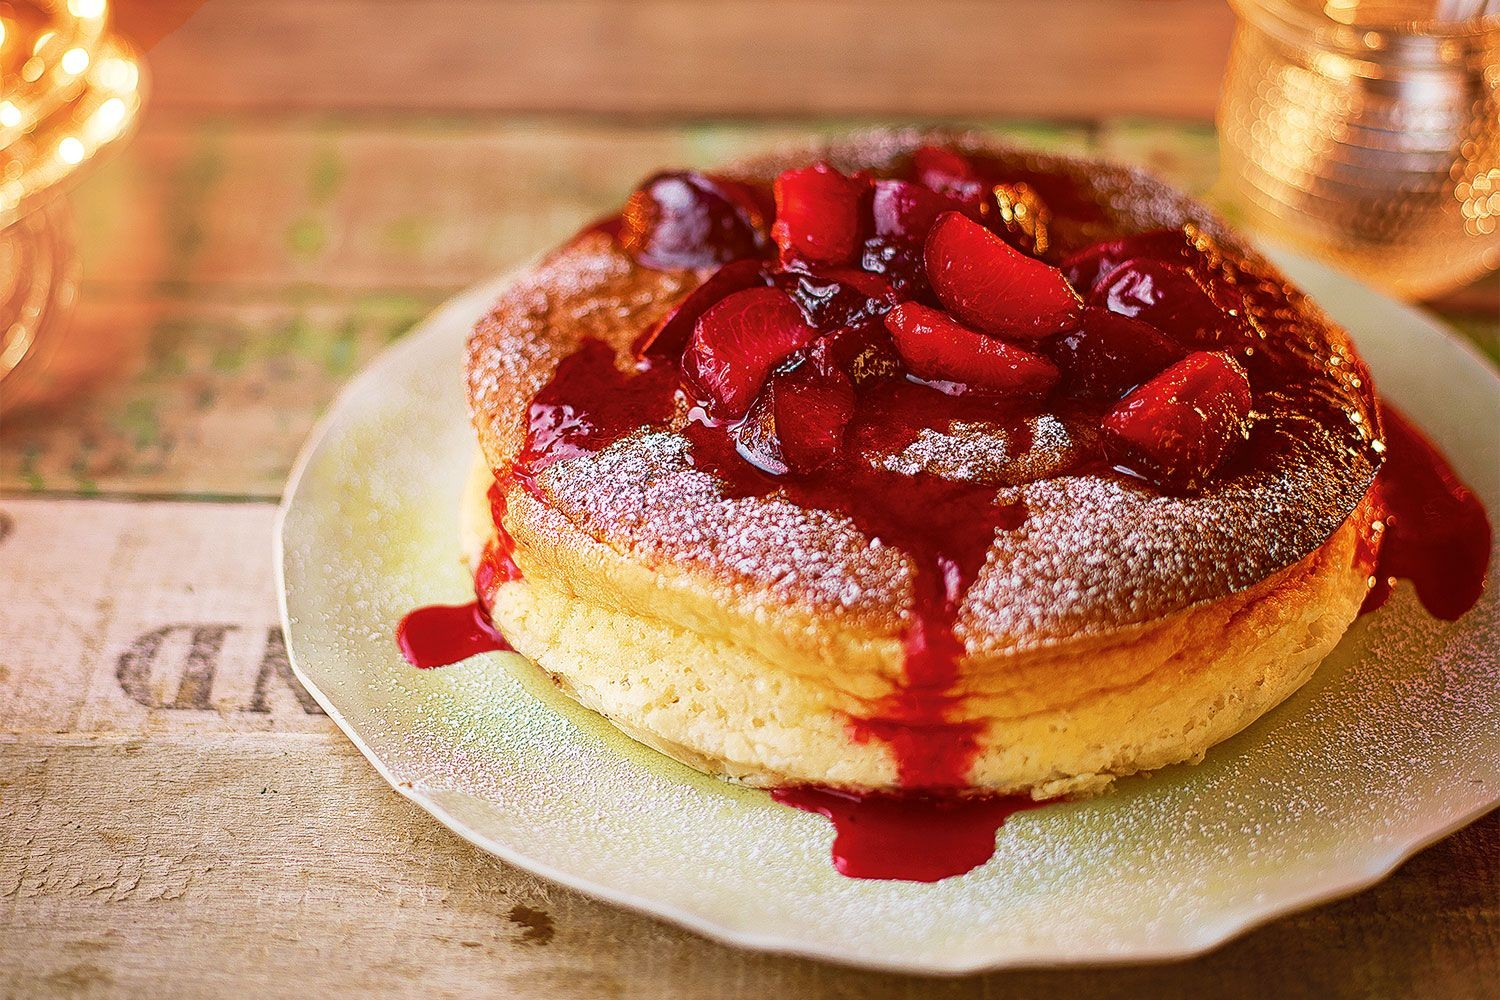 jamie-olivers-cotton-cheesecake-with-honey-plums-30763-2